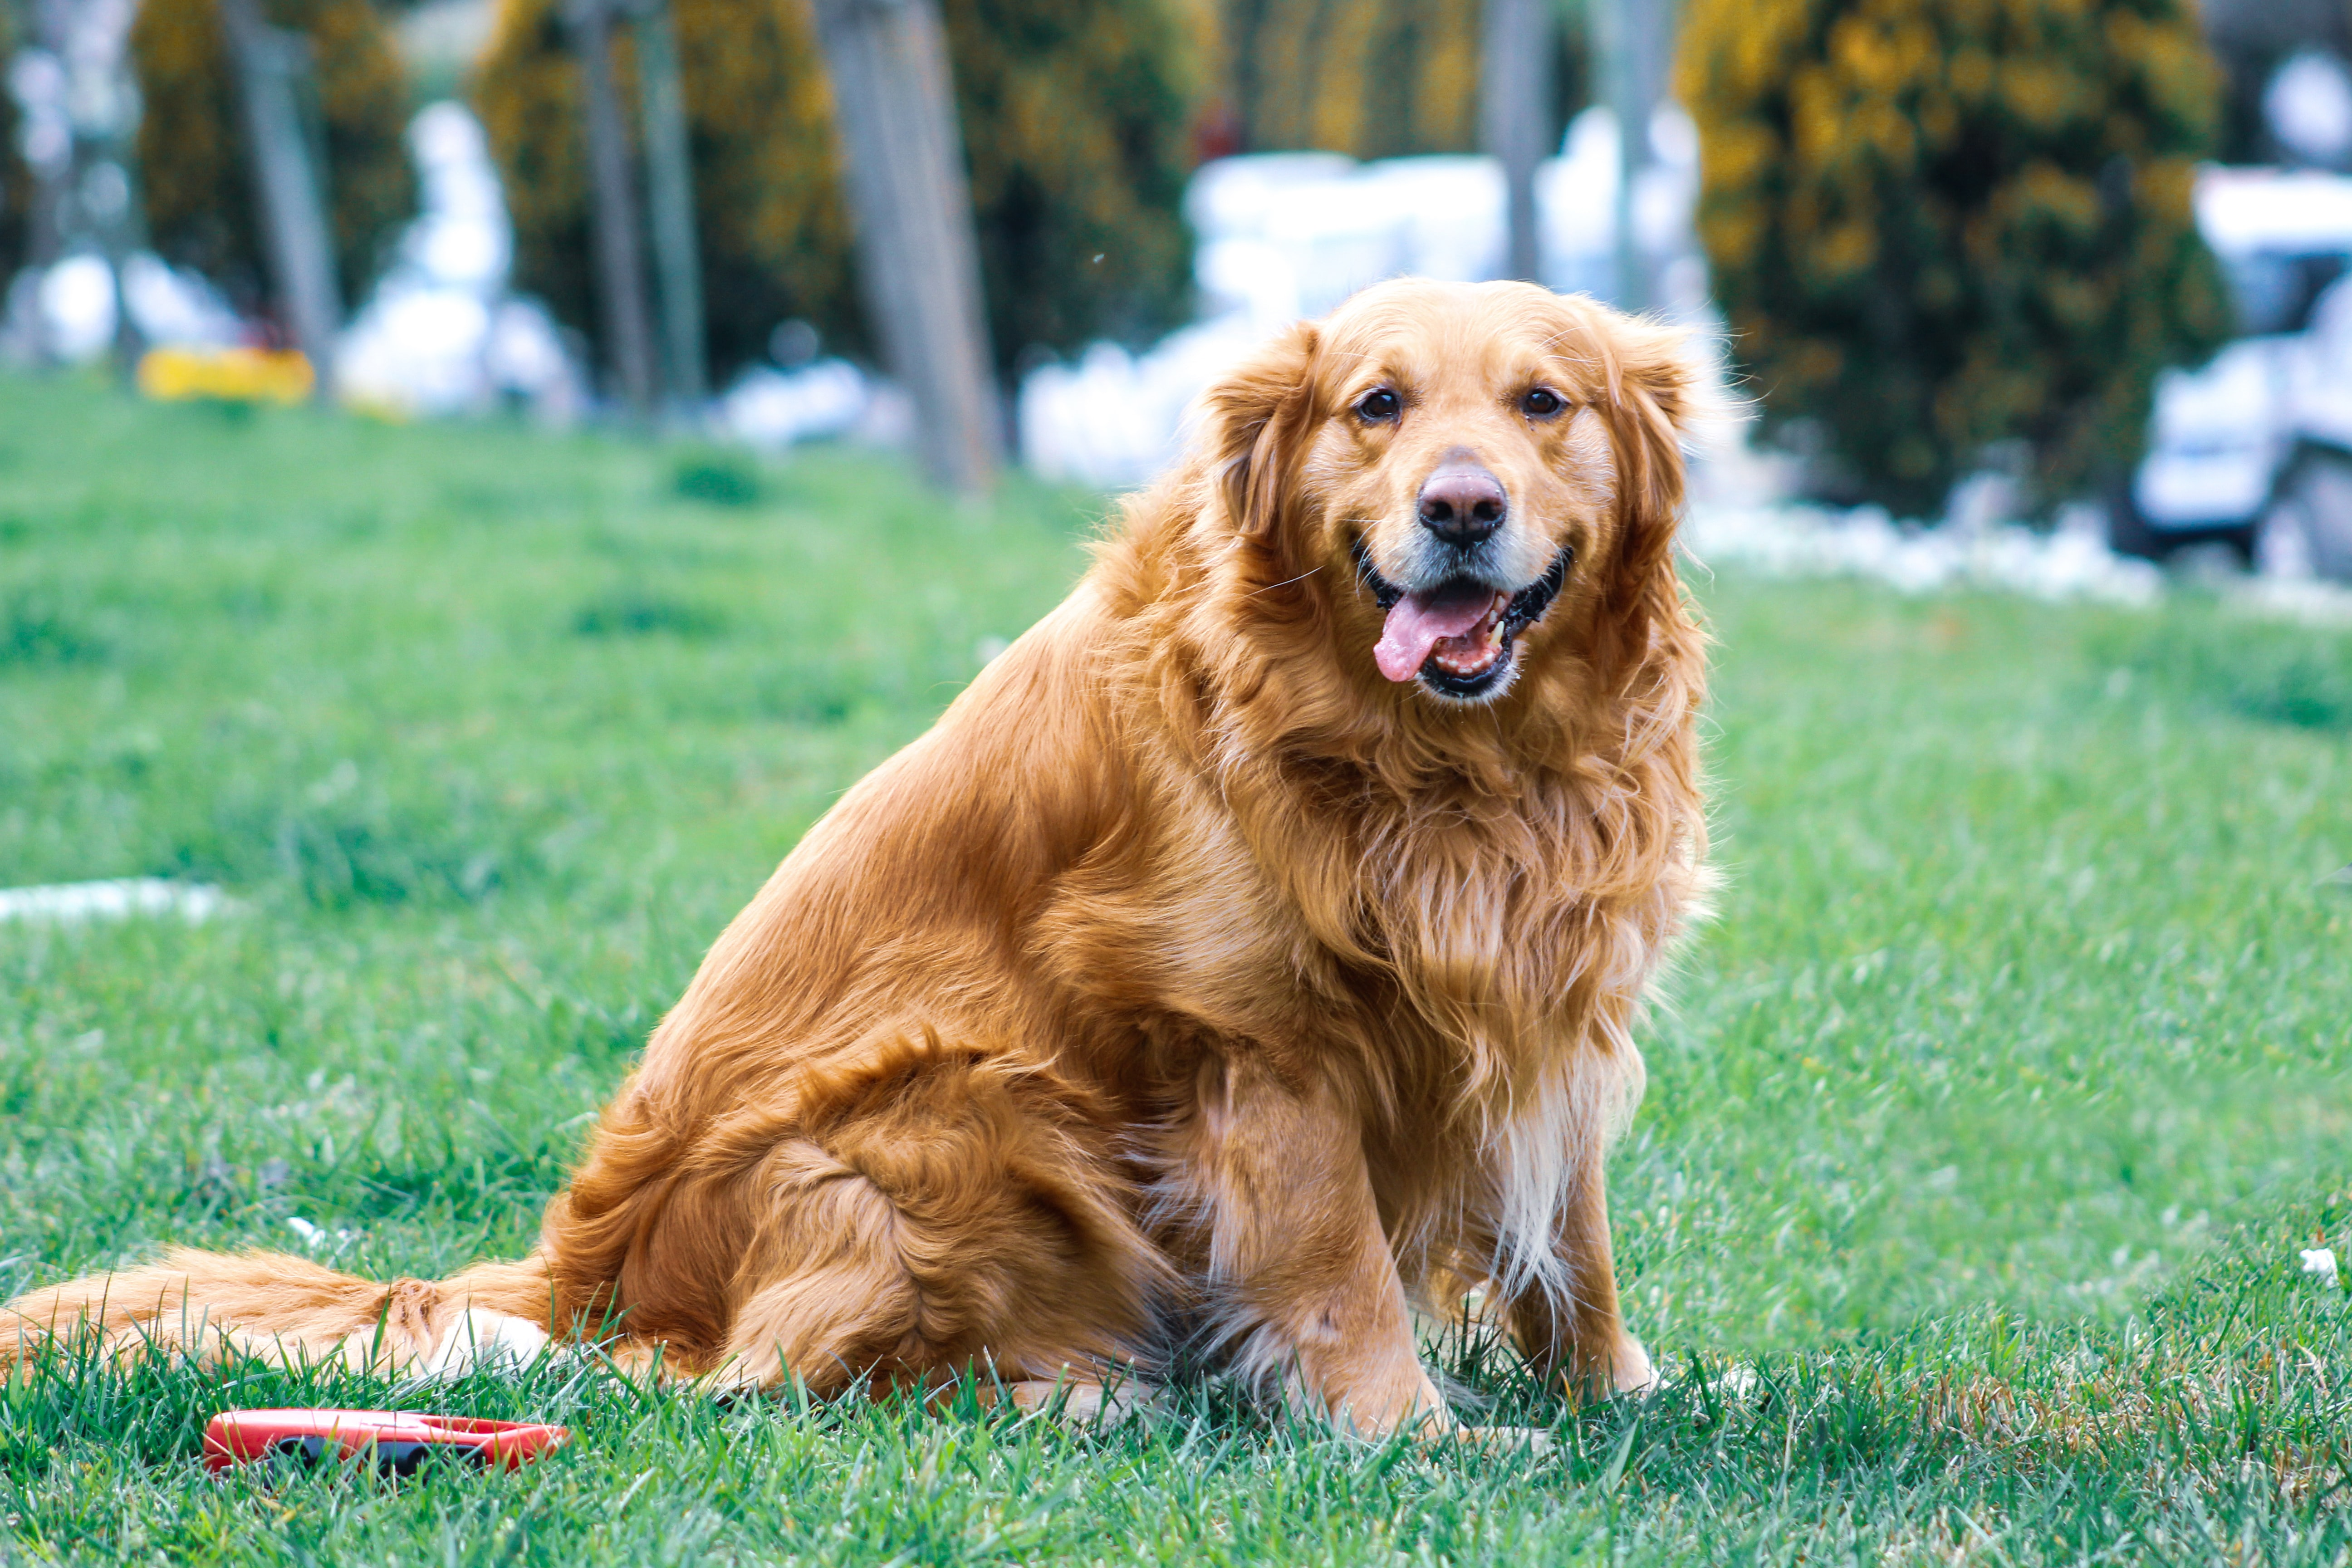 golden retrievers are one of the best choices for a family